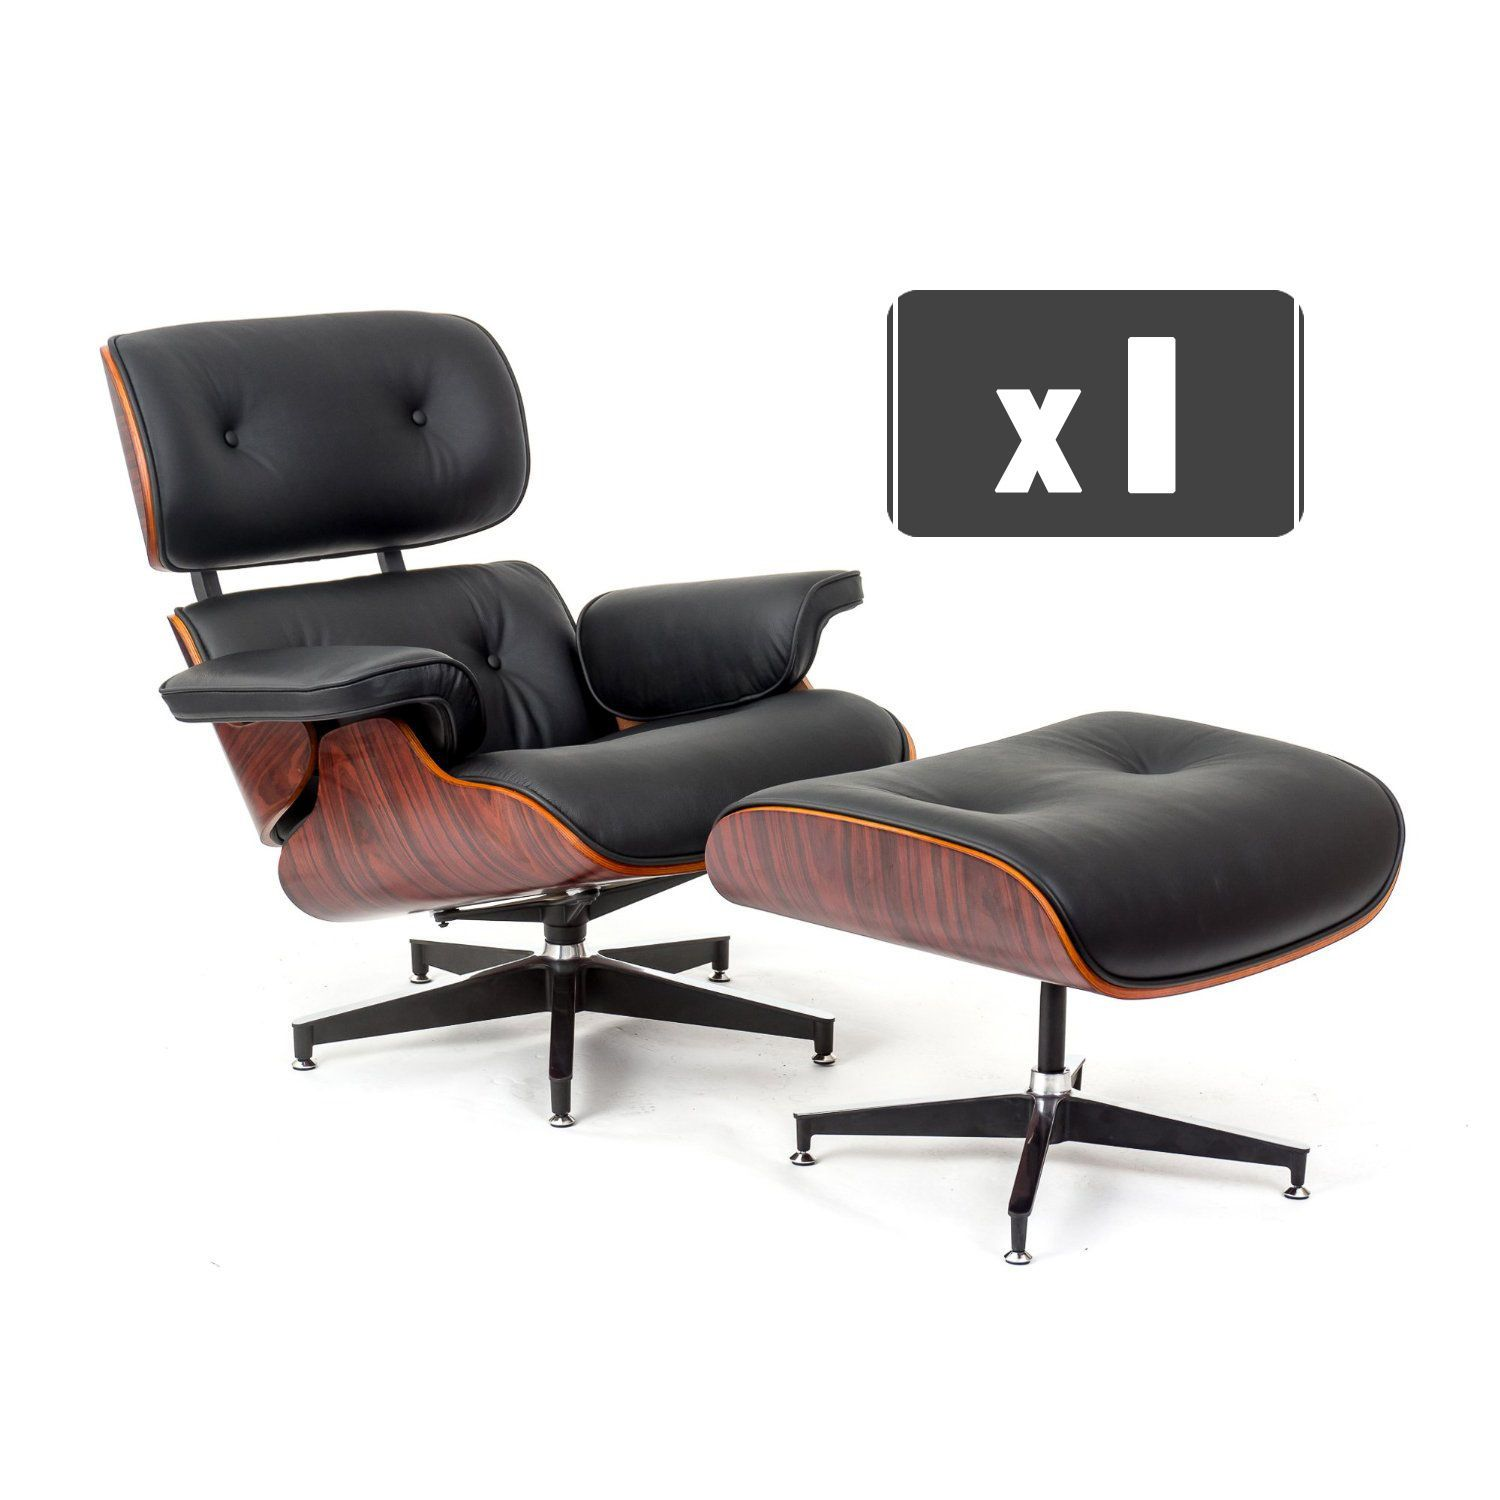 Eames Chair Replica Ebay Ebay Midcentury Modern In 2019 Eames Style Lounge Chair